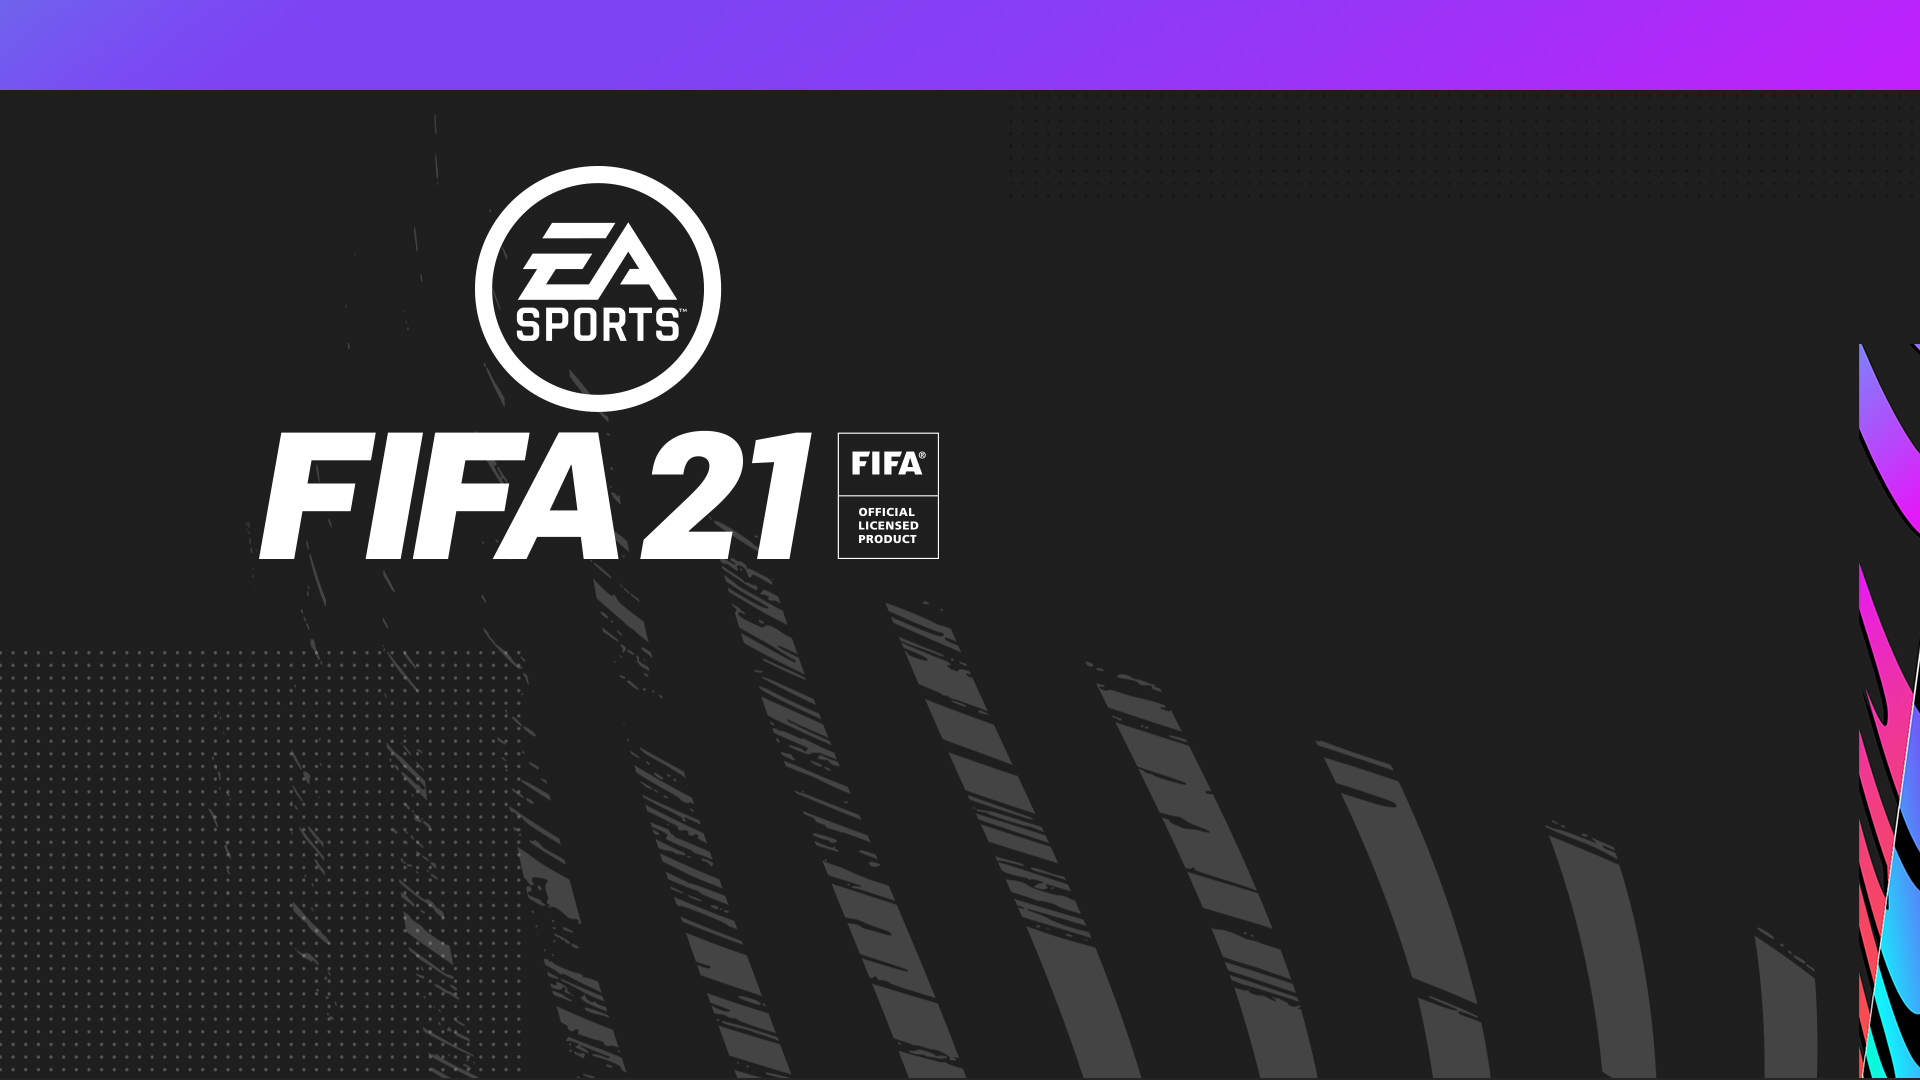 EA Sports logo, FIFA 21, FIFA Official Licensed Product, stiliserte grå, rosa, lilla og blå striper og prikker